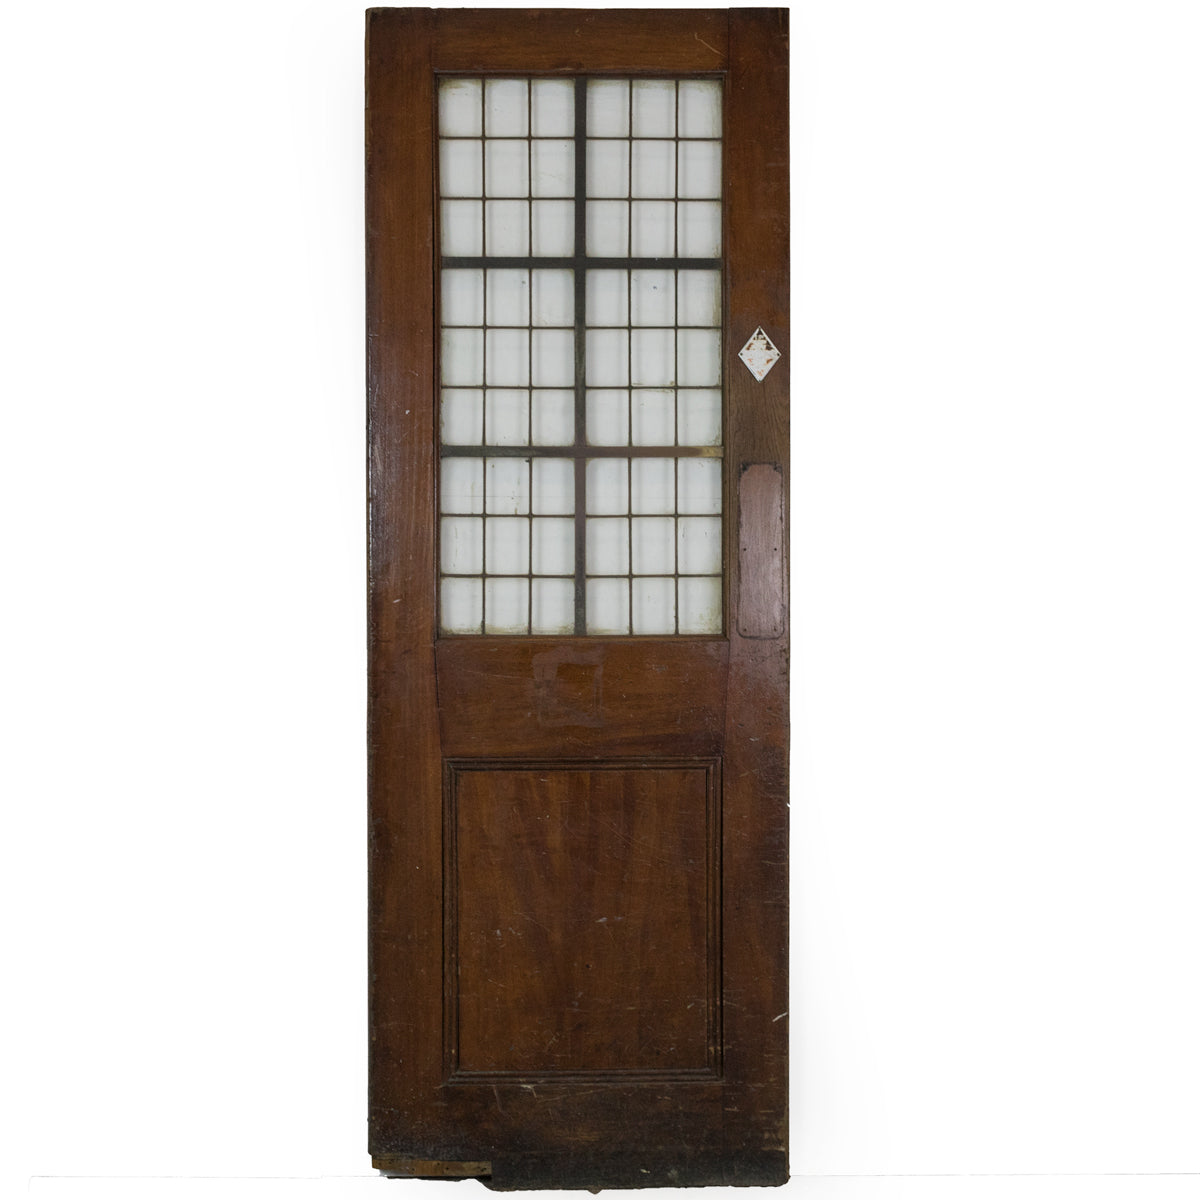 Reclaimed Oak Copper Light Door- 207cm x 74cm